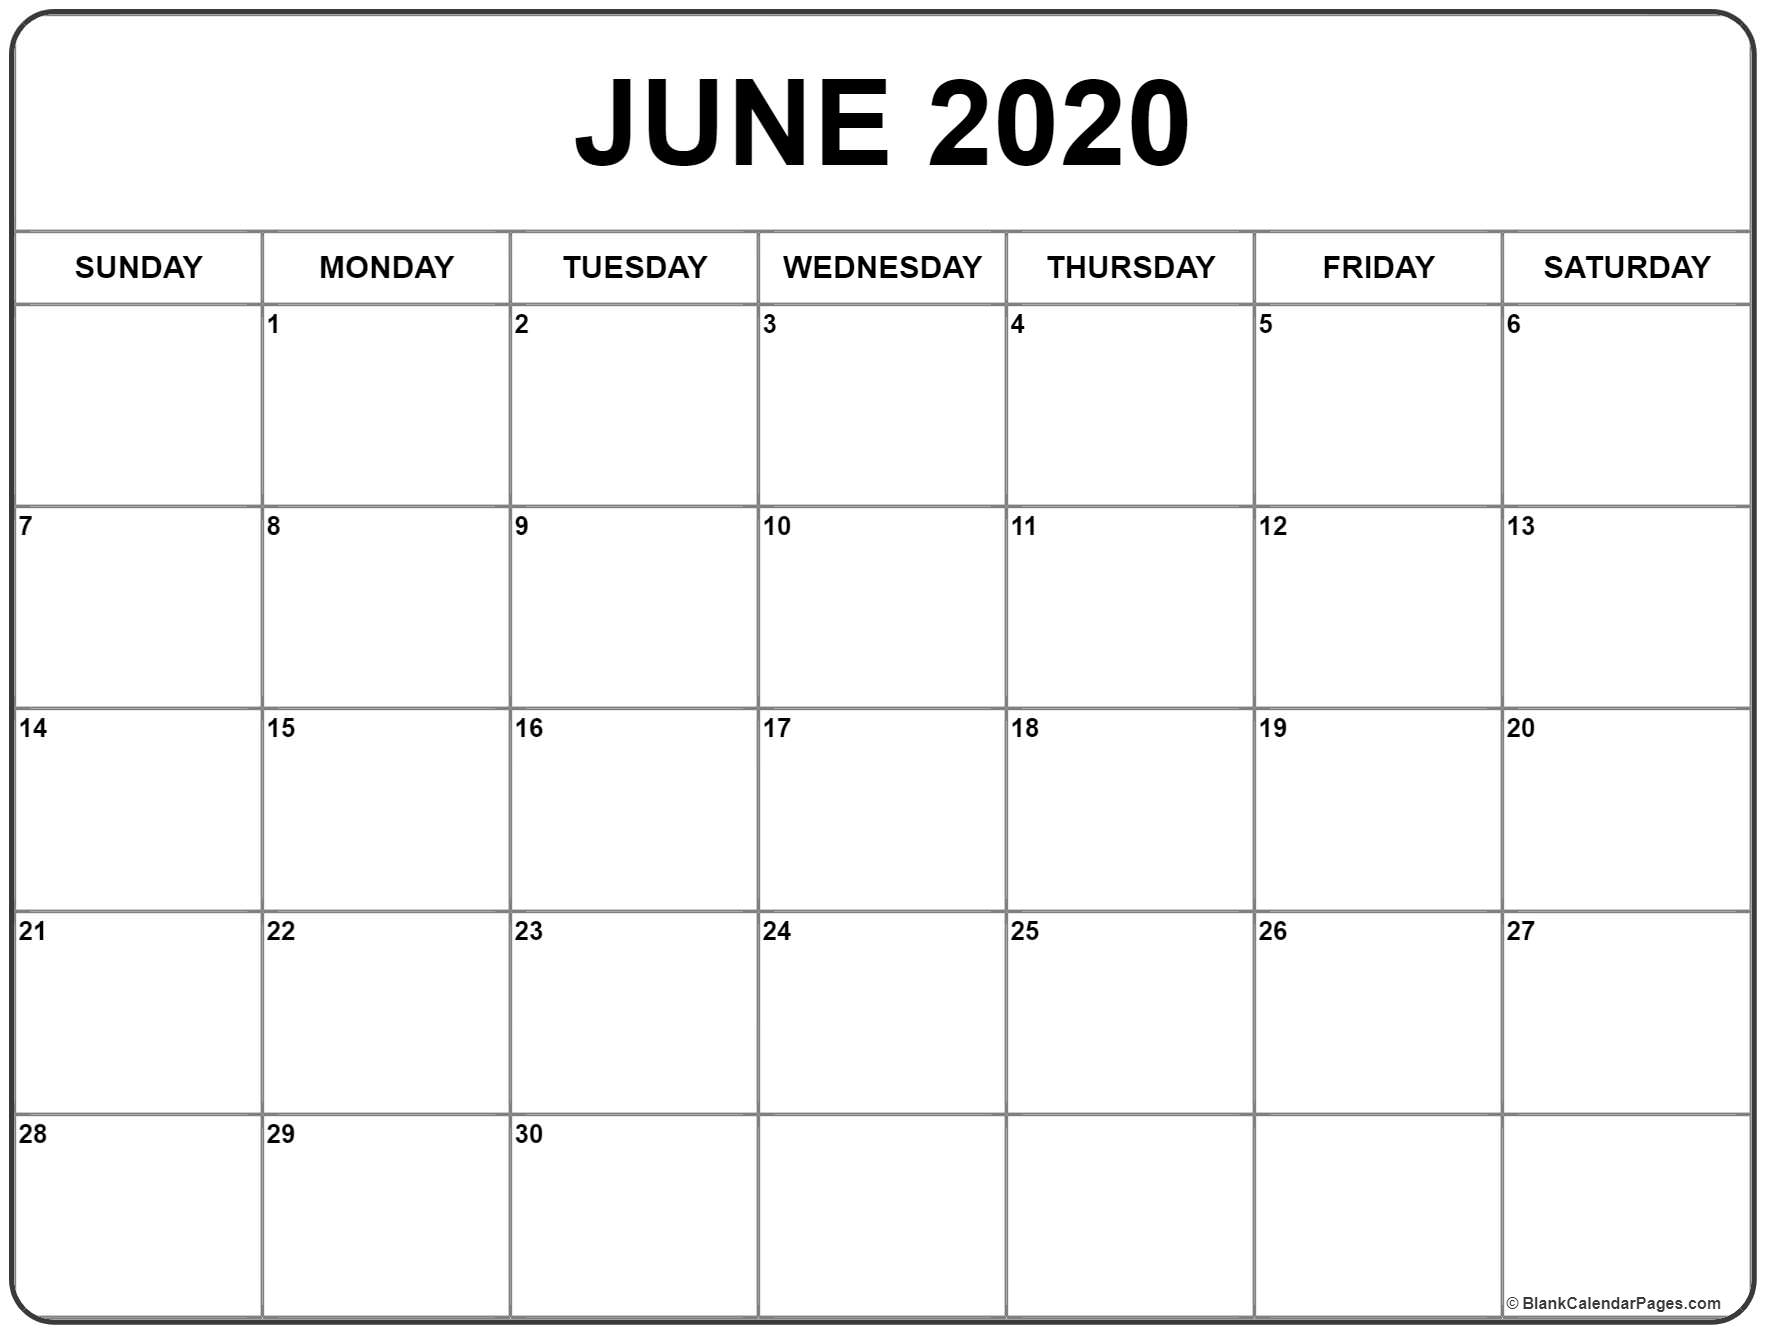 June 2020 Calendar | Free Printable Monthly Calendars within Free 2020 Calendar Maker